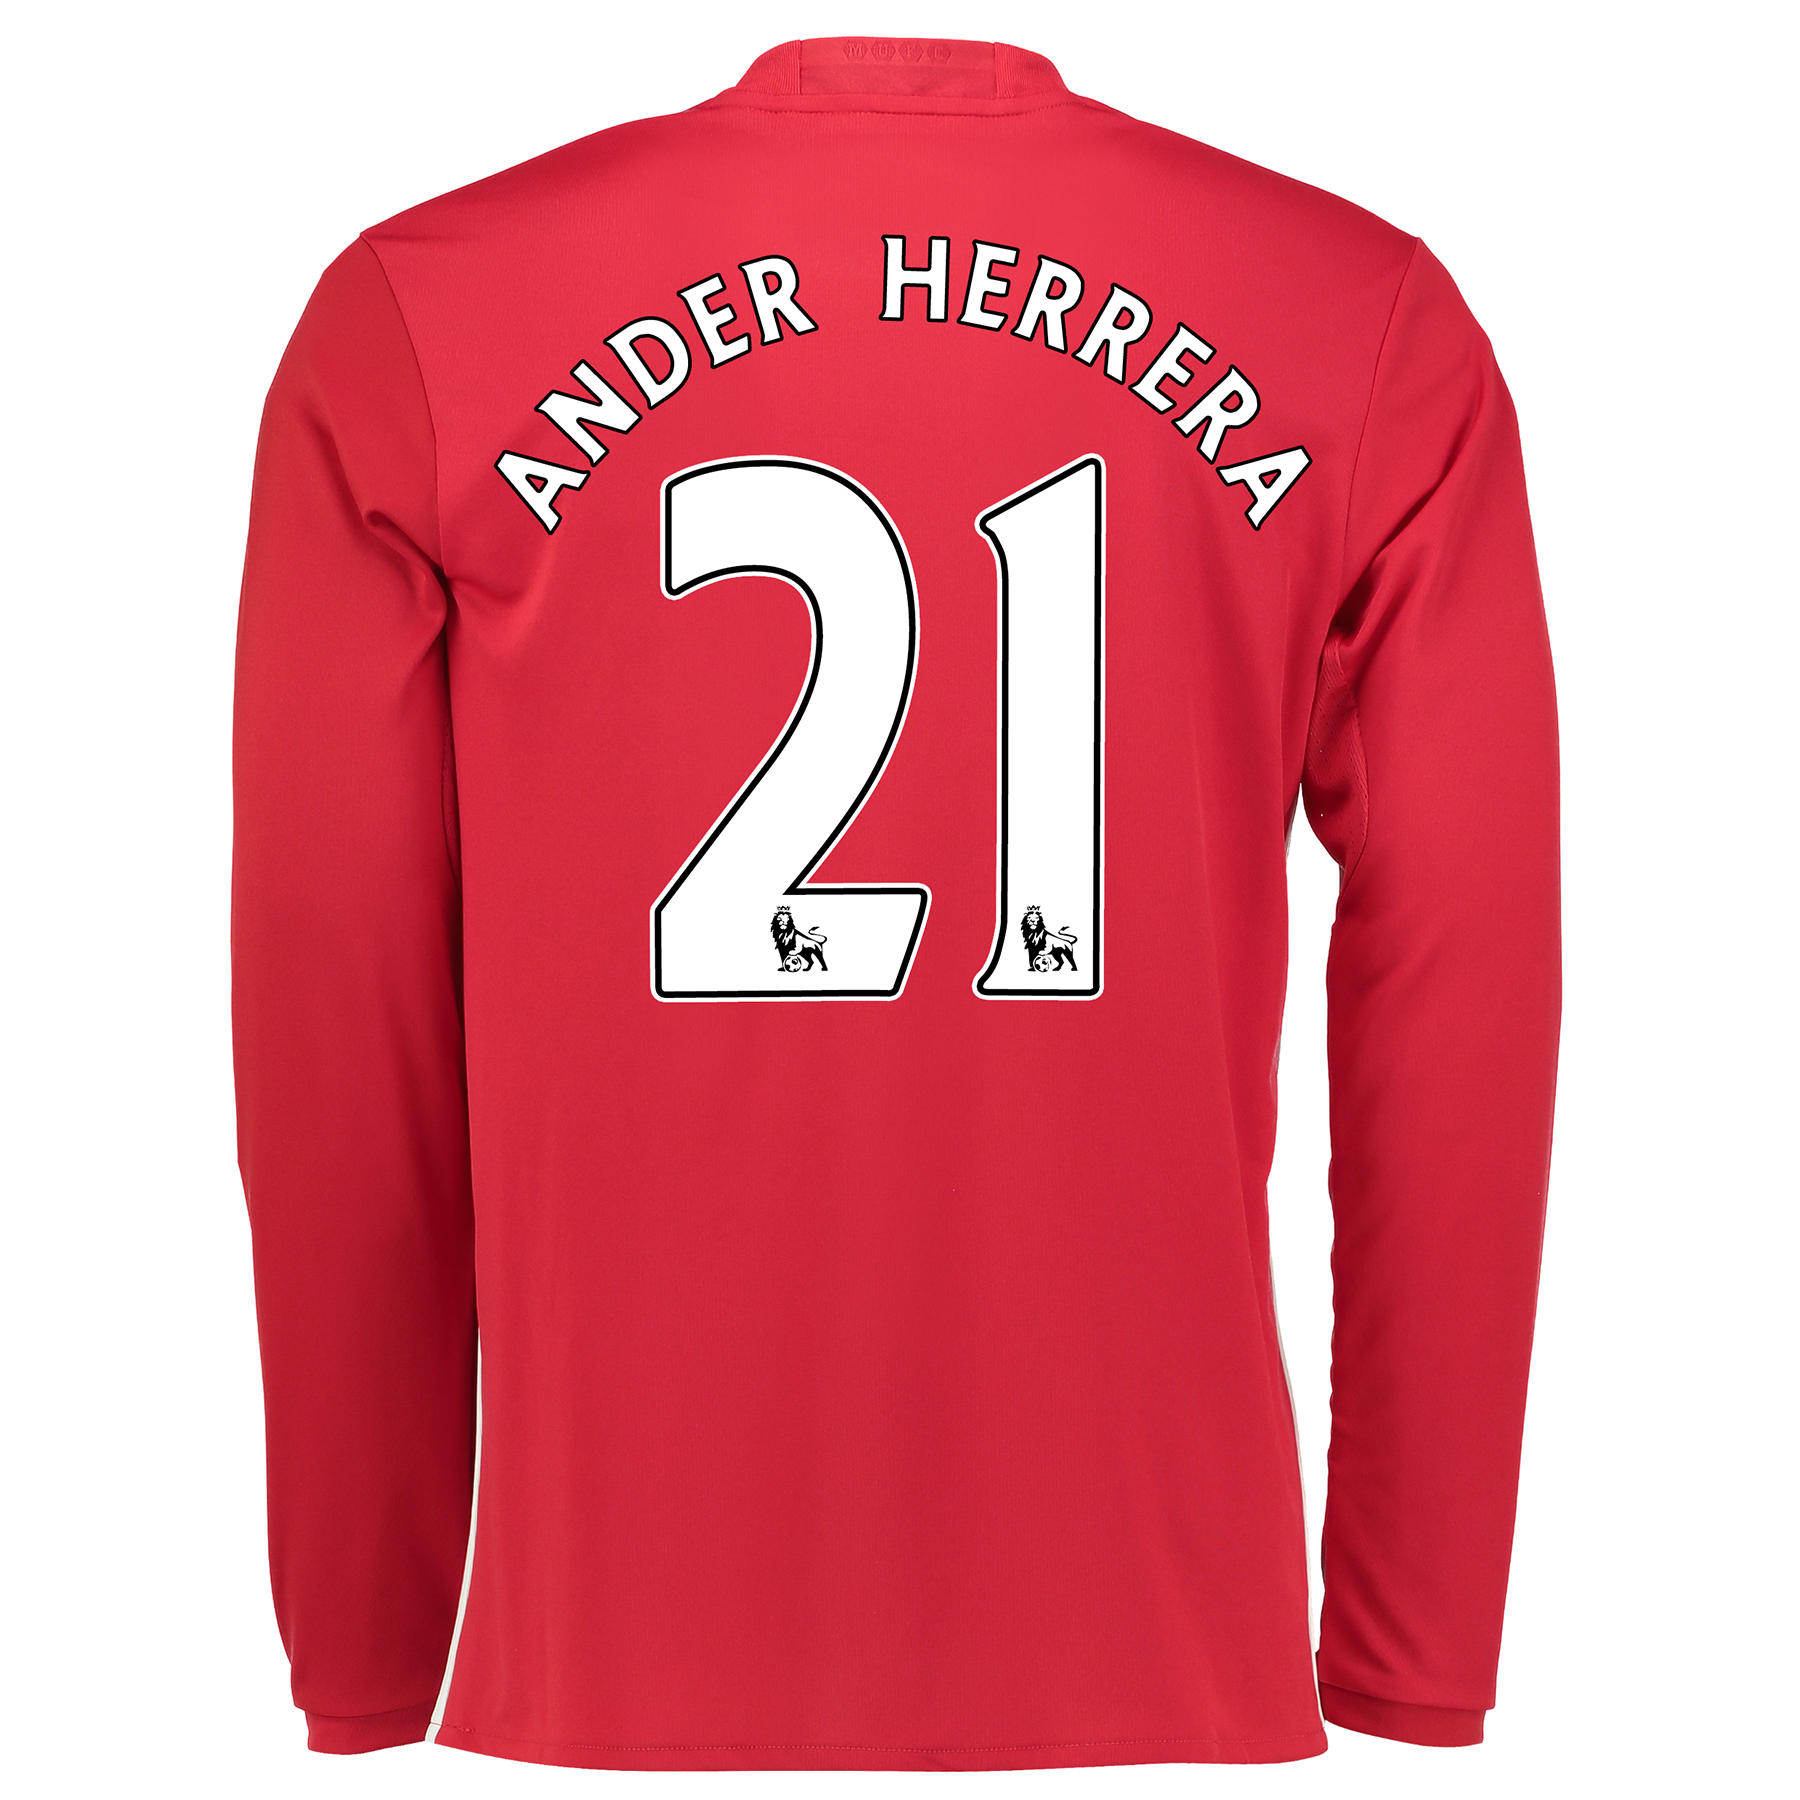 Manchester United Home Shirt 2016-17 - Long Sleeve with Herrera 21 pri